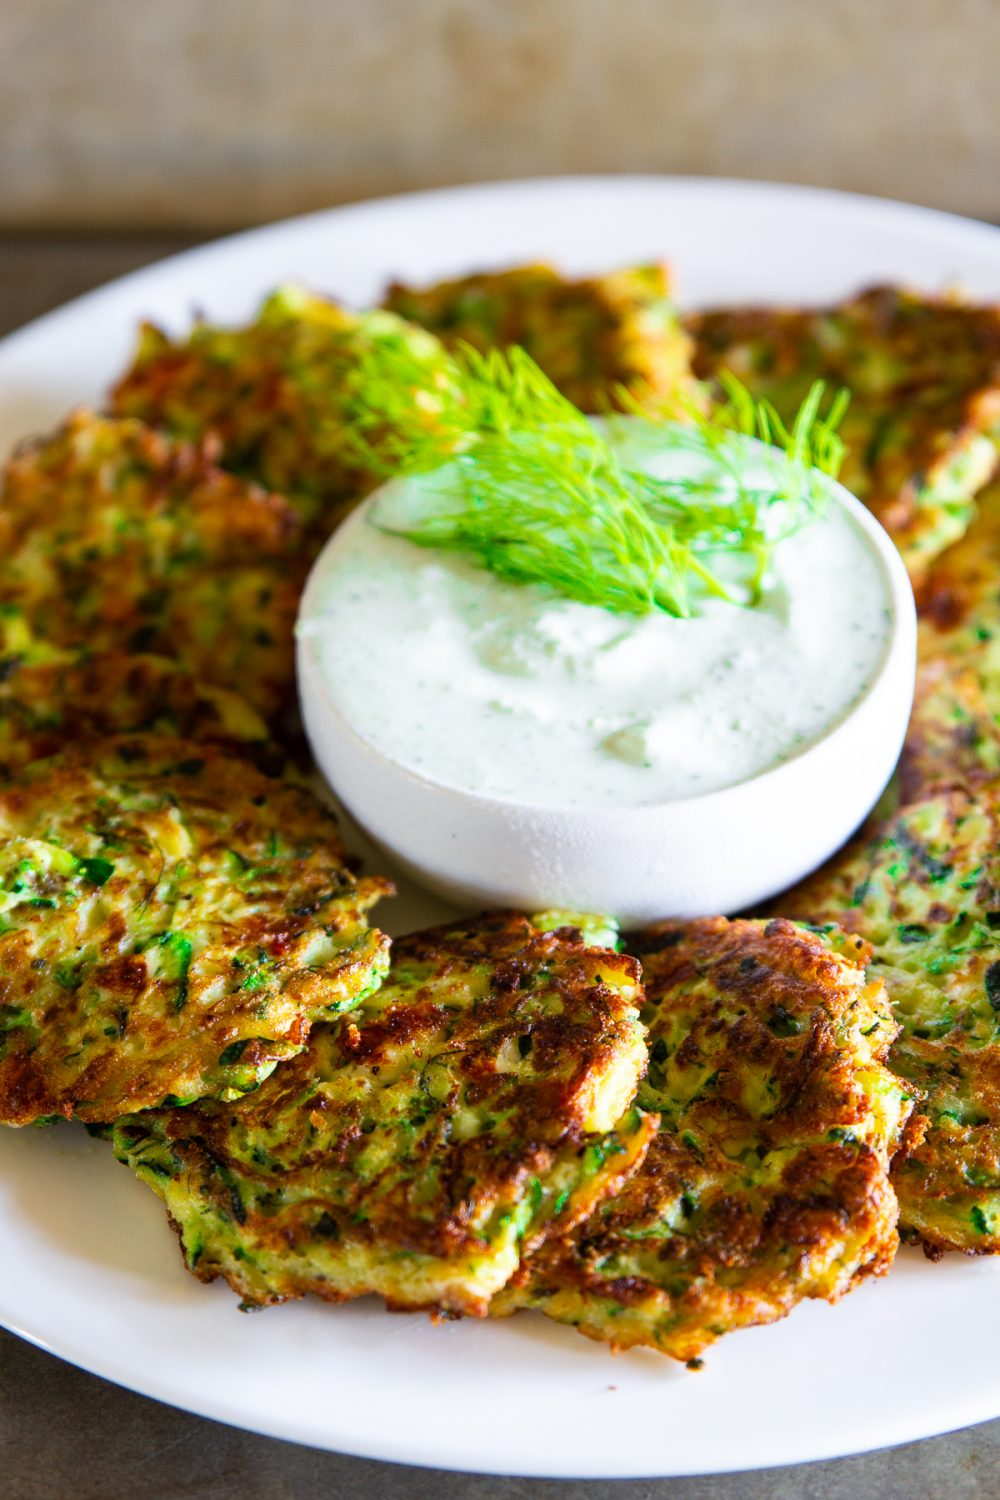 Zucchini fritters with dill and yogurt sauce